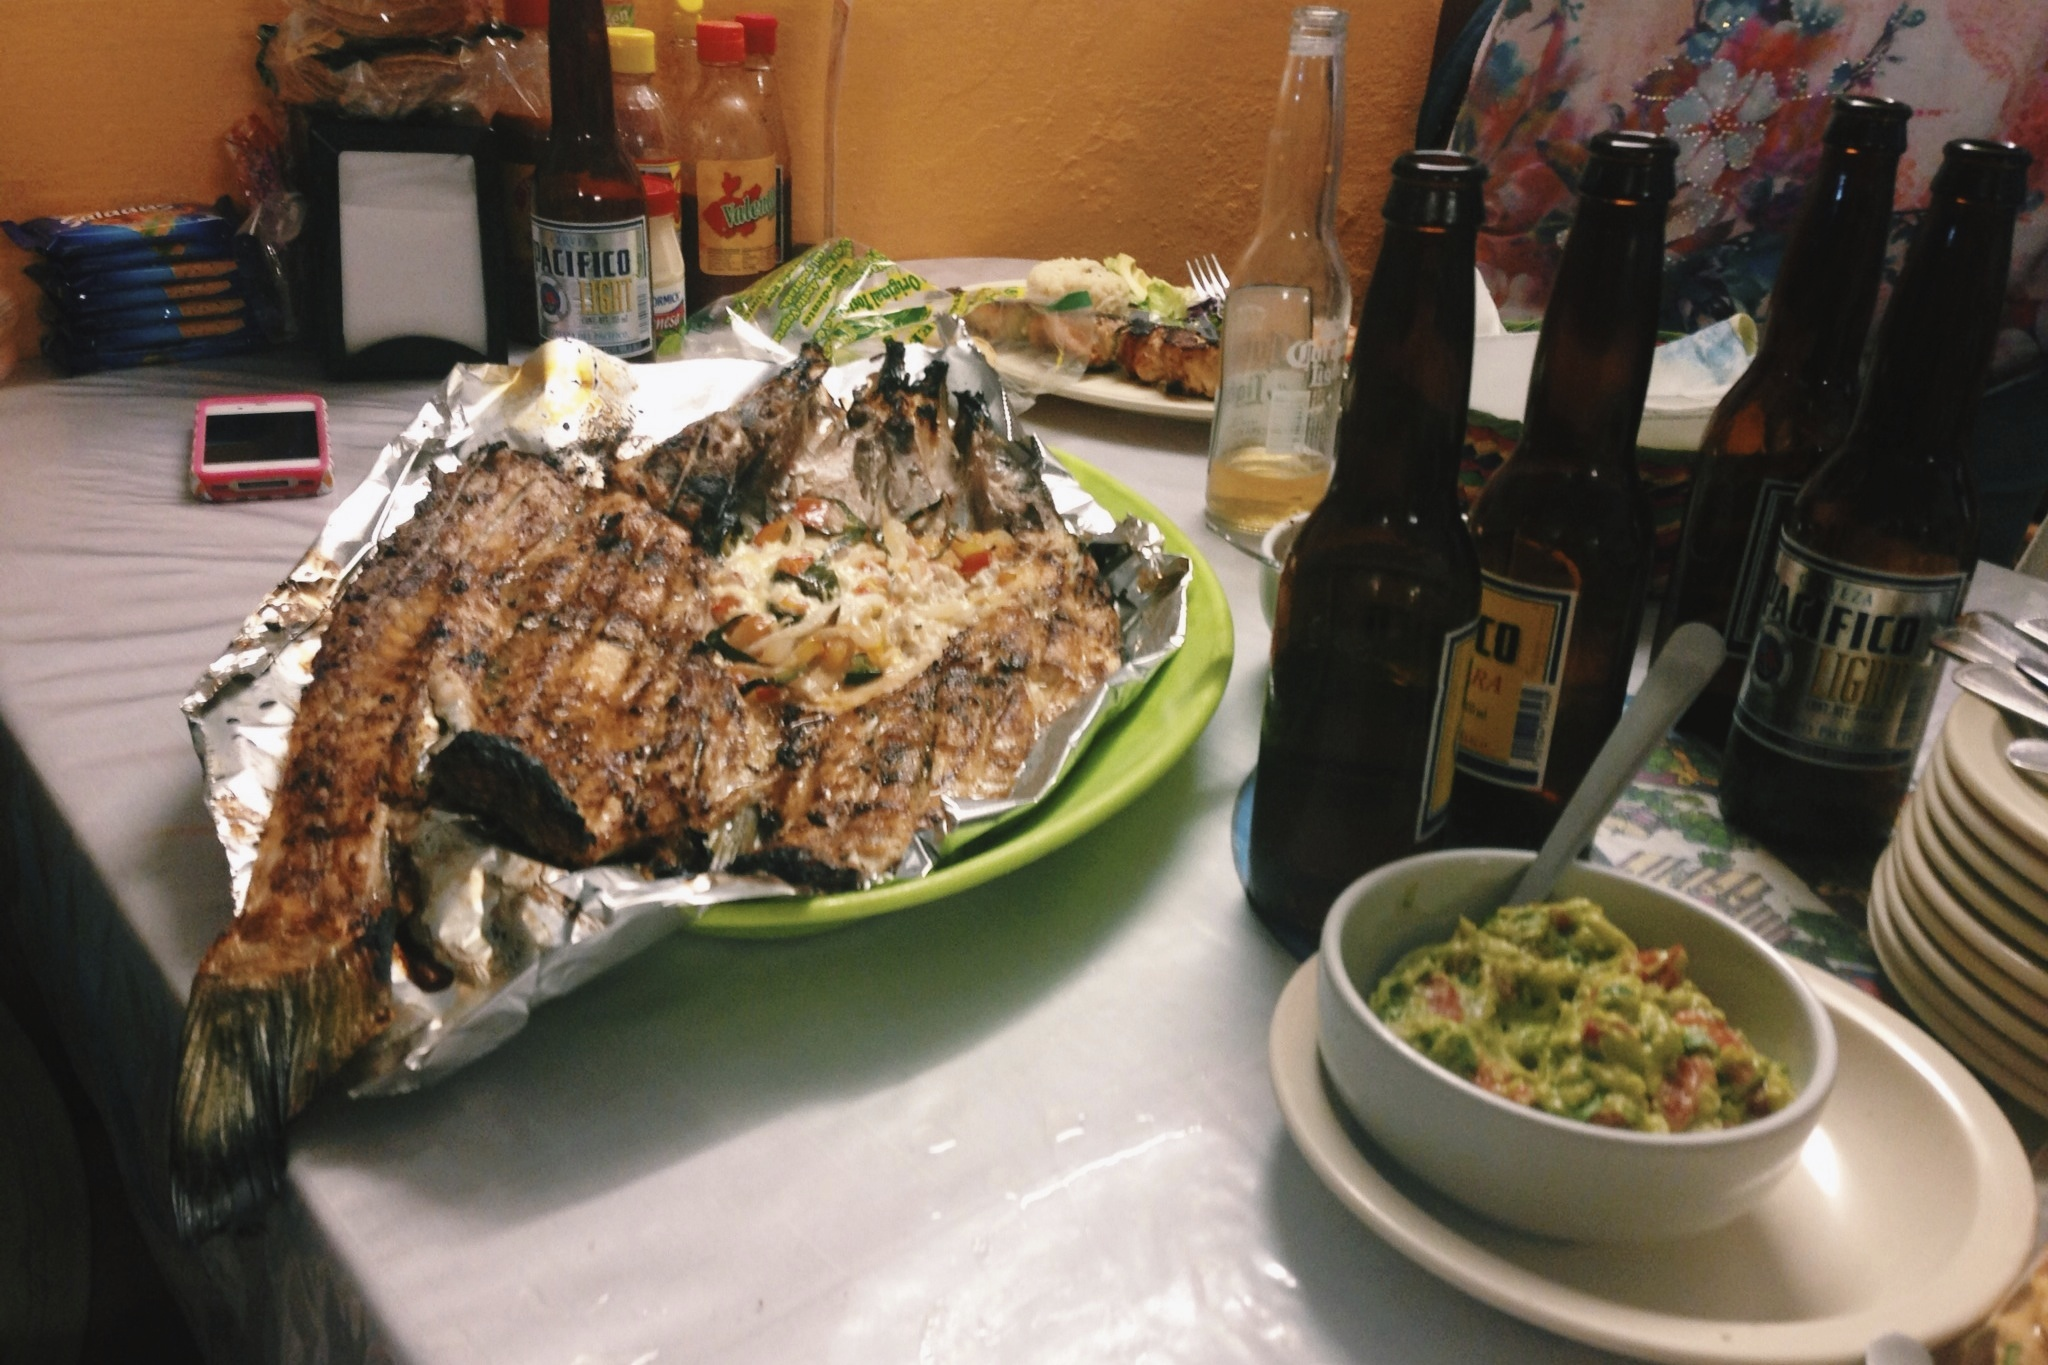 Plenty of fish for sharing.  Keep the cervezas coming por favor!